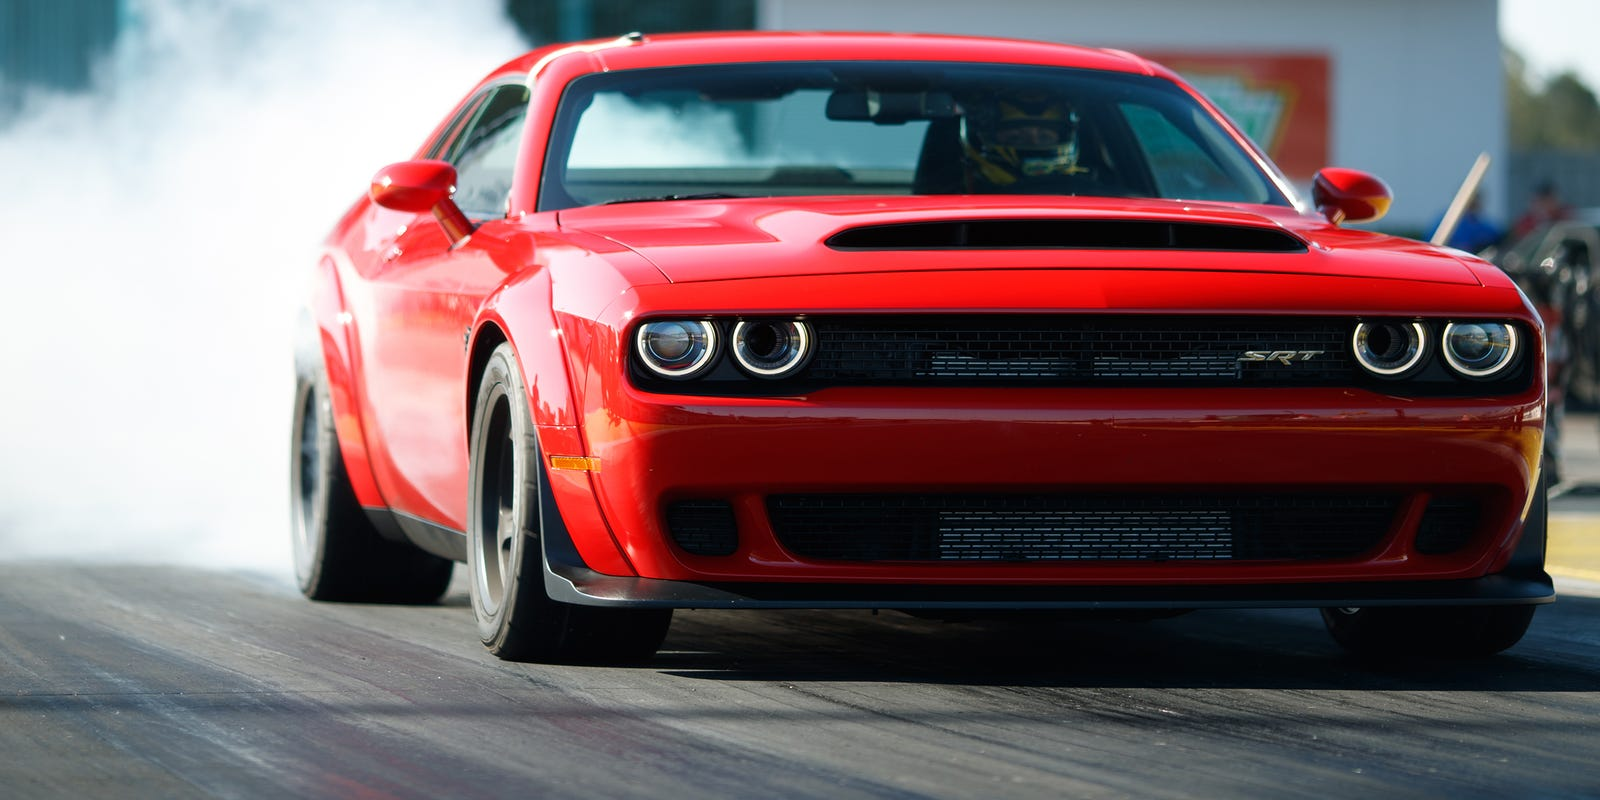 Last Dodge Demon, the super muscle car, rolls off the line